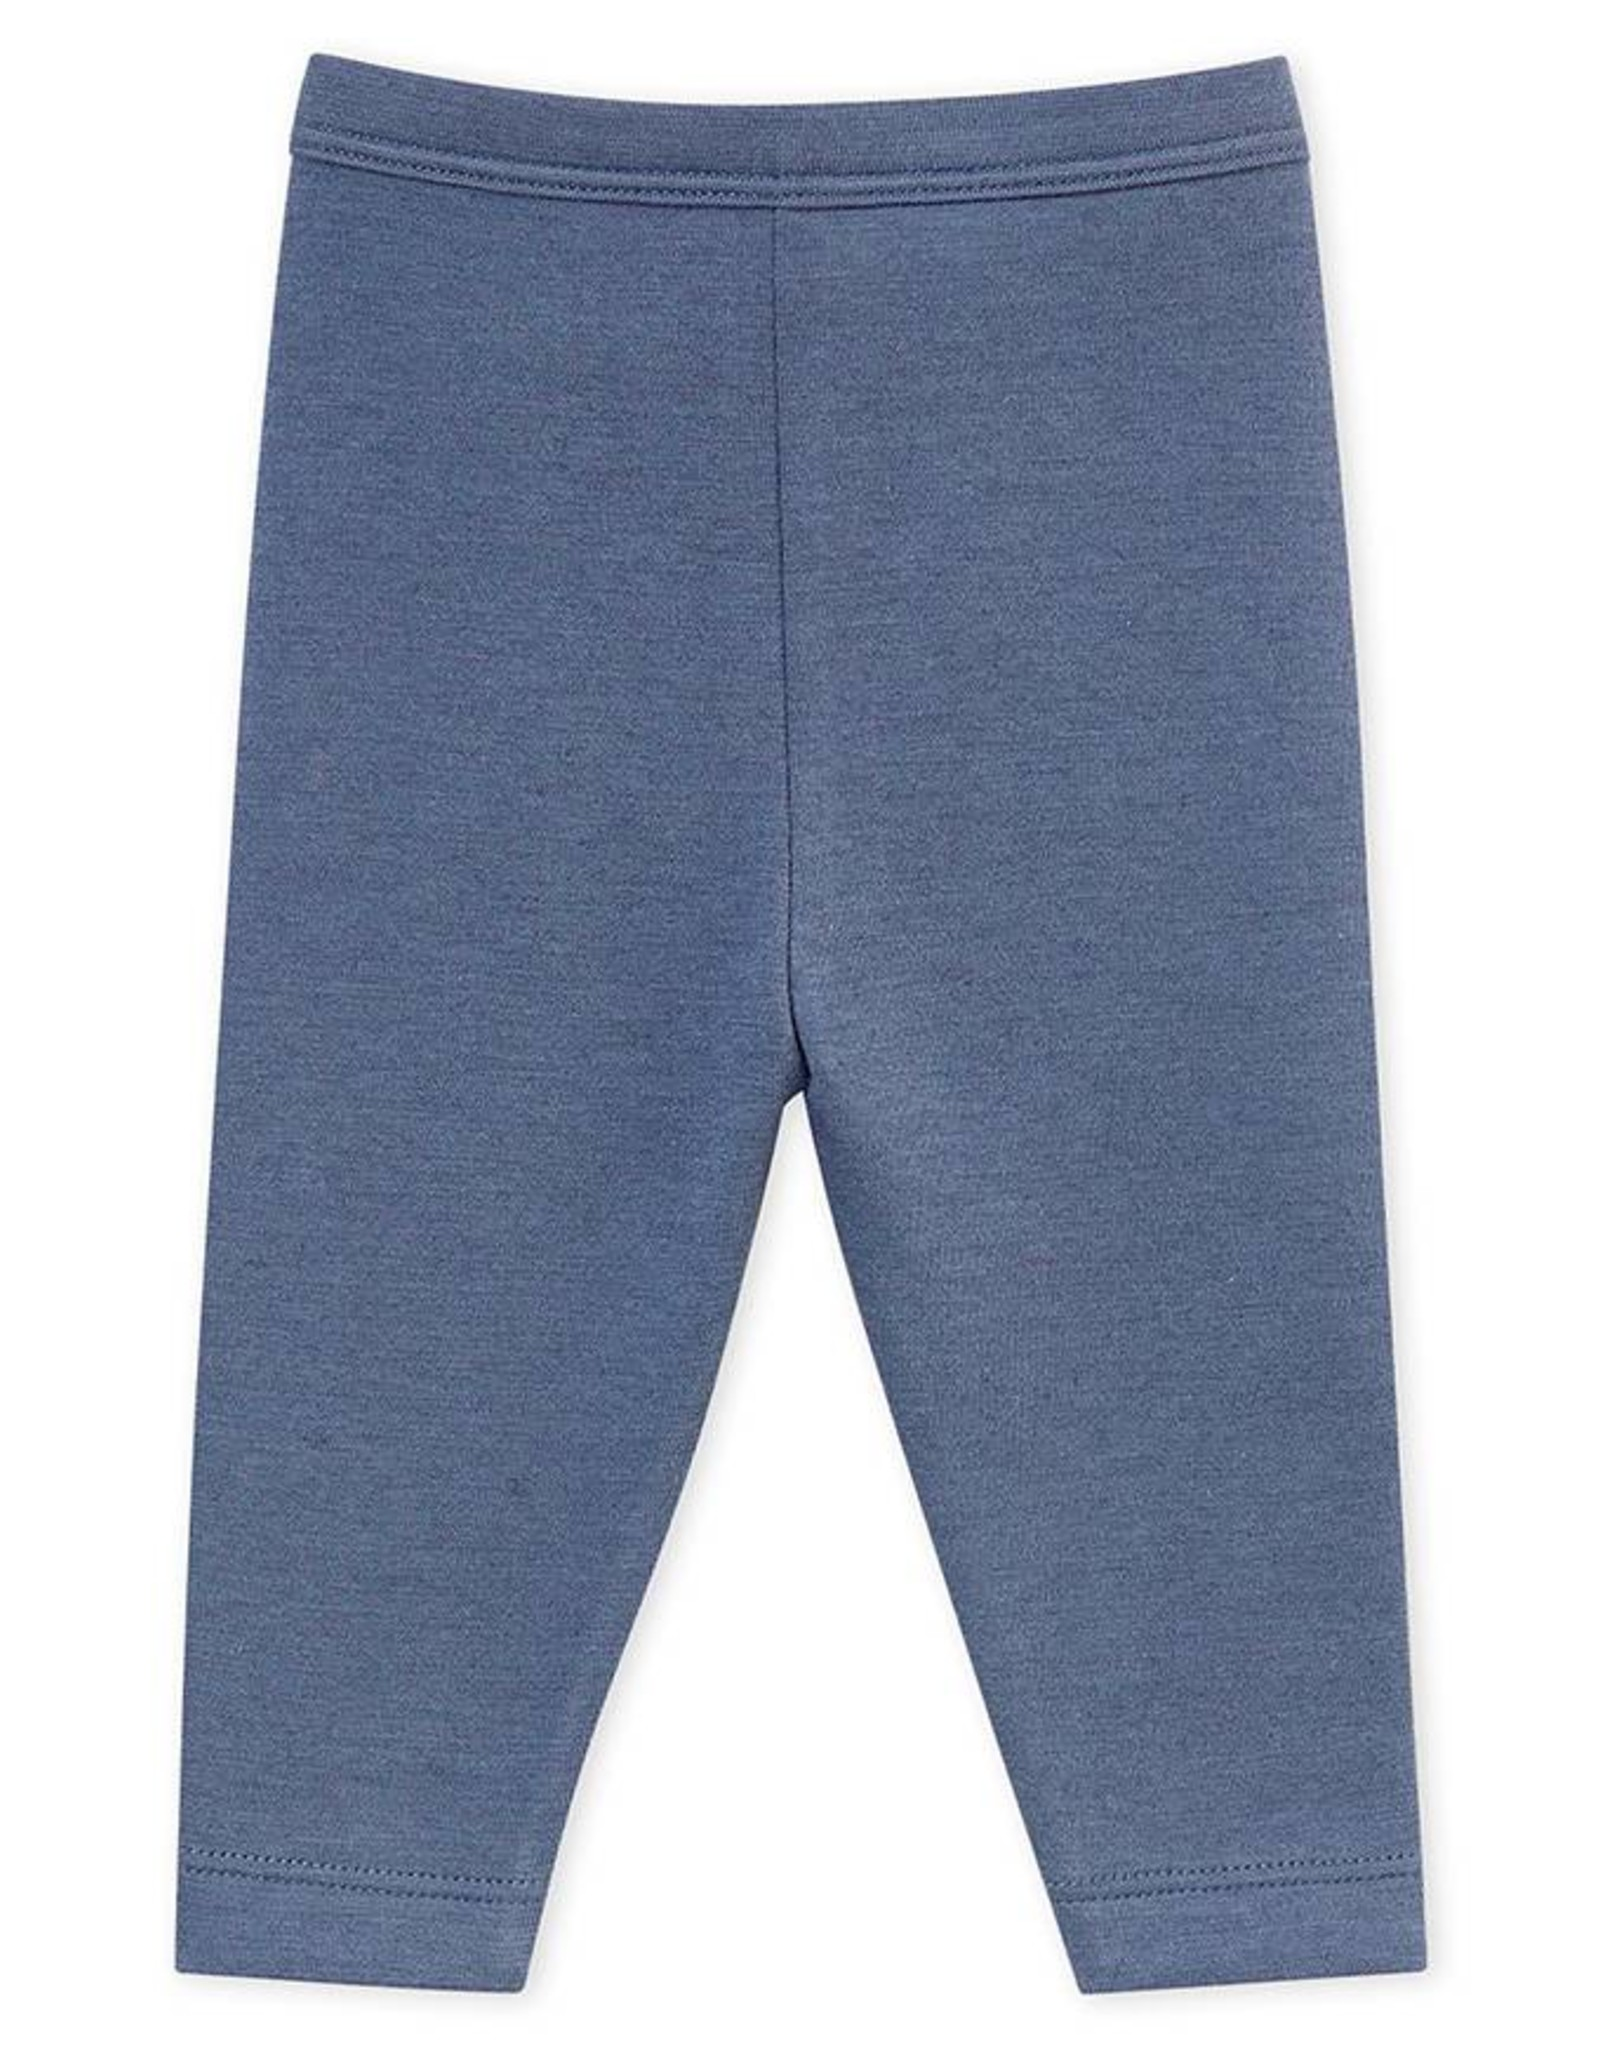 Wool and cotton leggings